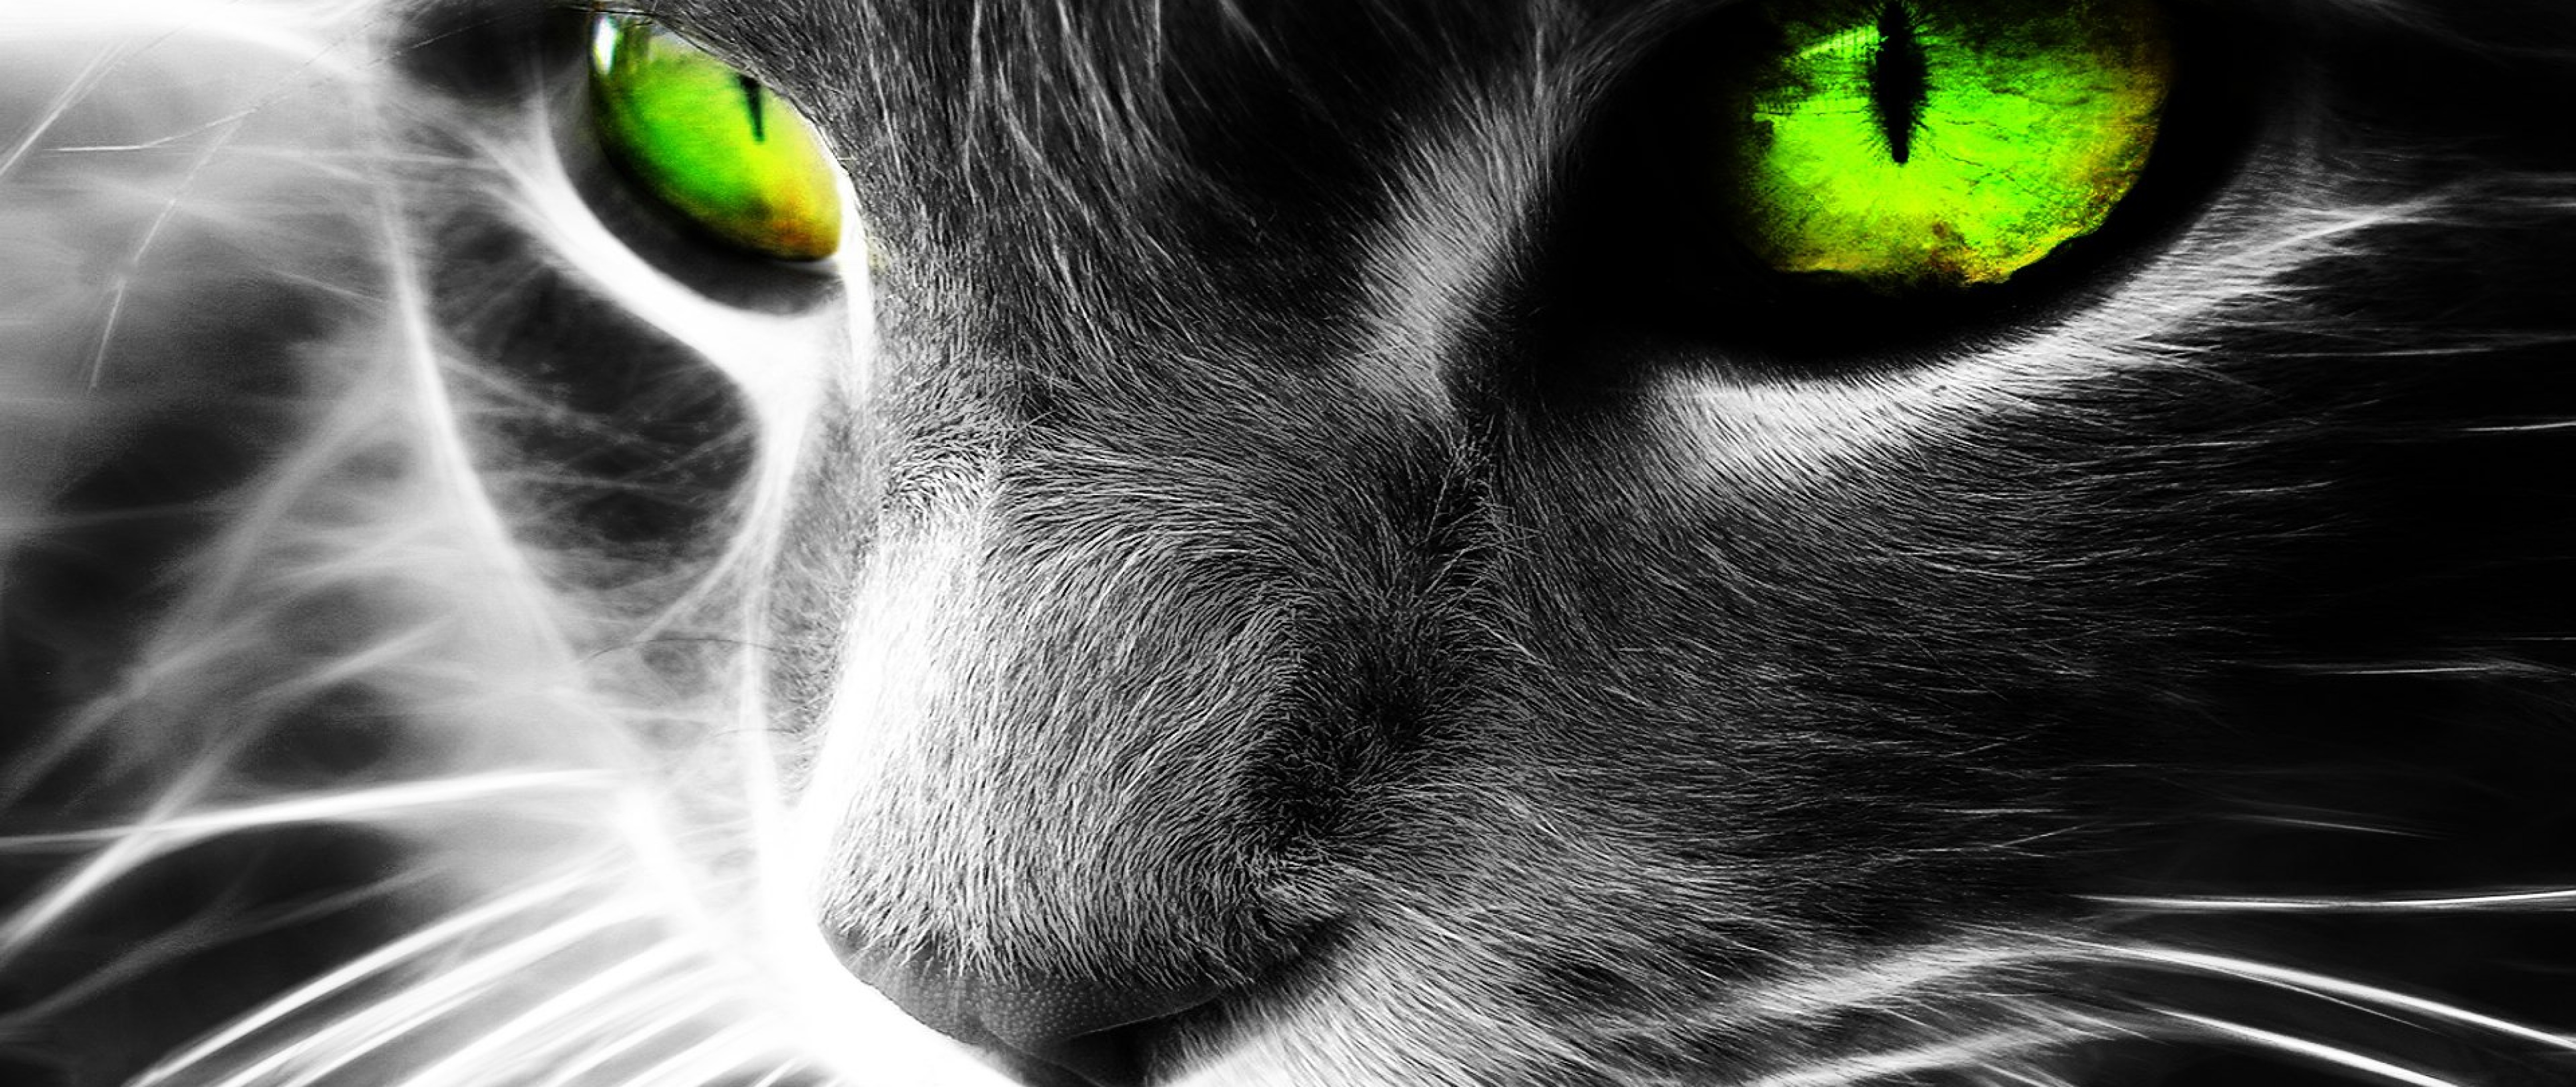 Green Eyes Cat Wallpaper For Desktop And Mobiles 4k Ultra Hd Wide Tv Hd Wallpaper Wallpapers Net